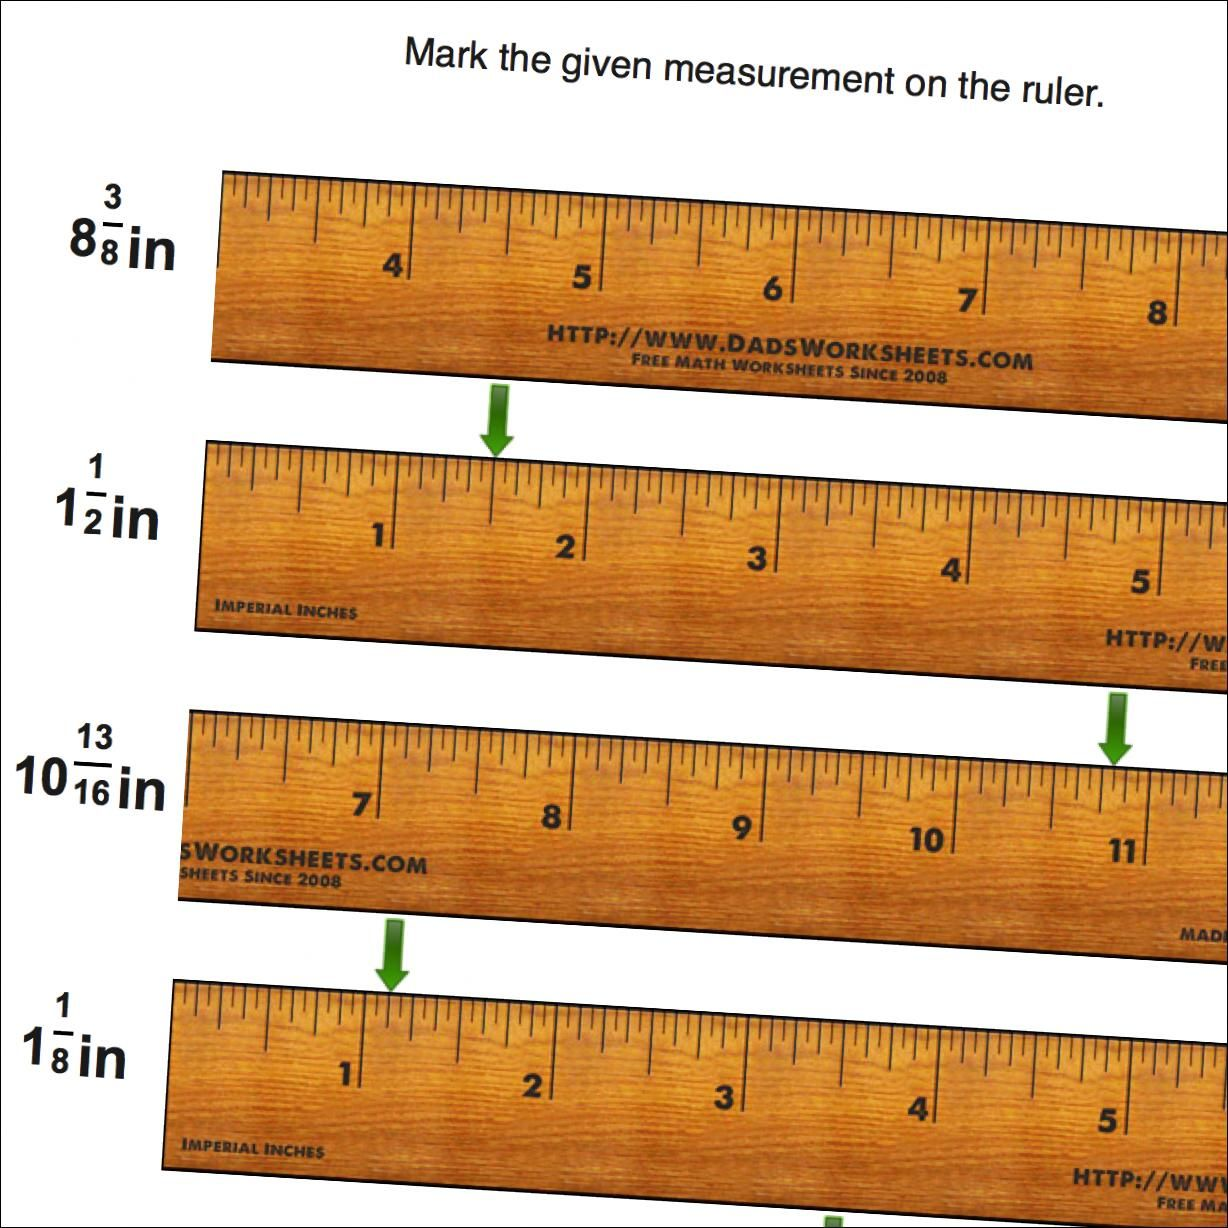 Math Worksheets Mark The Ruler